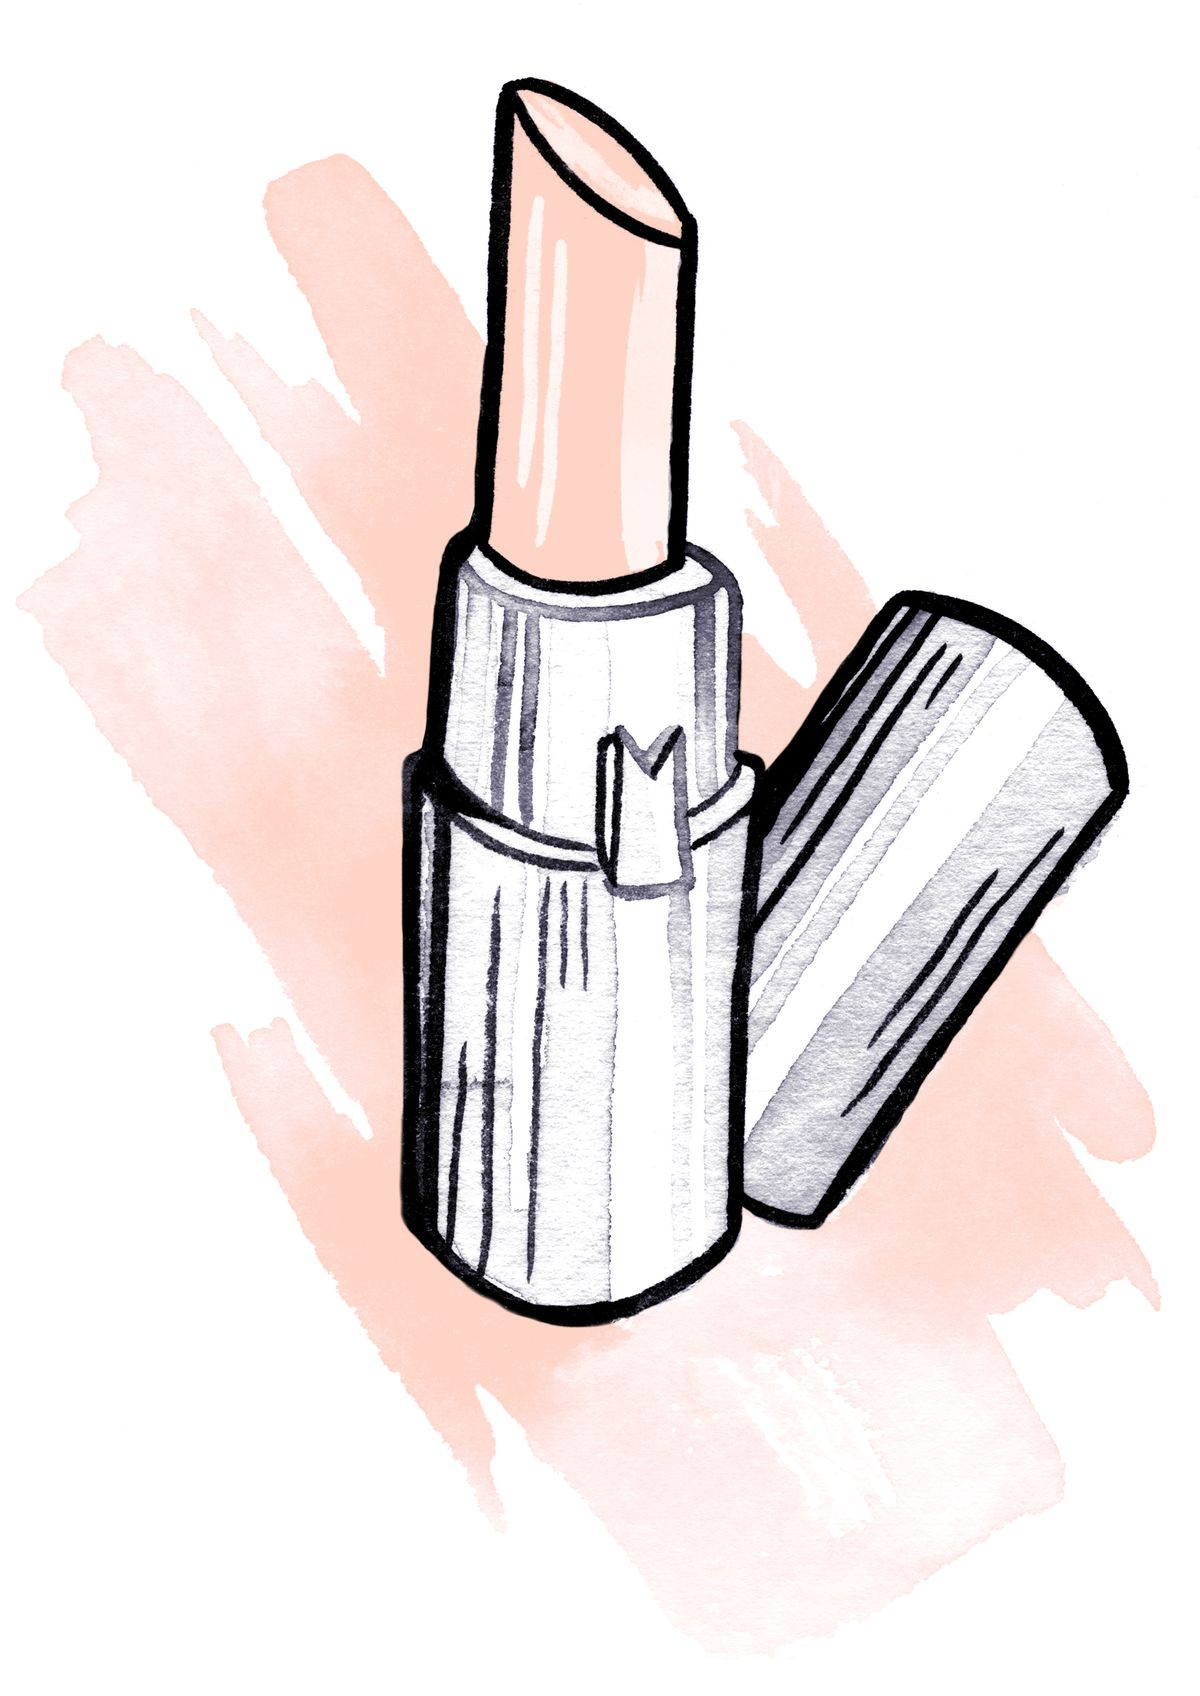 Infiltrating Makeup Alley, the Internet's Most Secretive